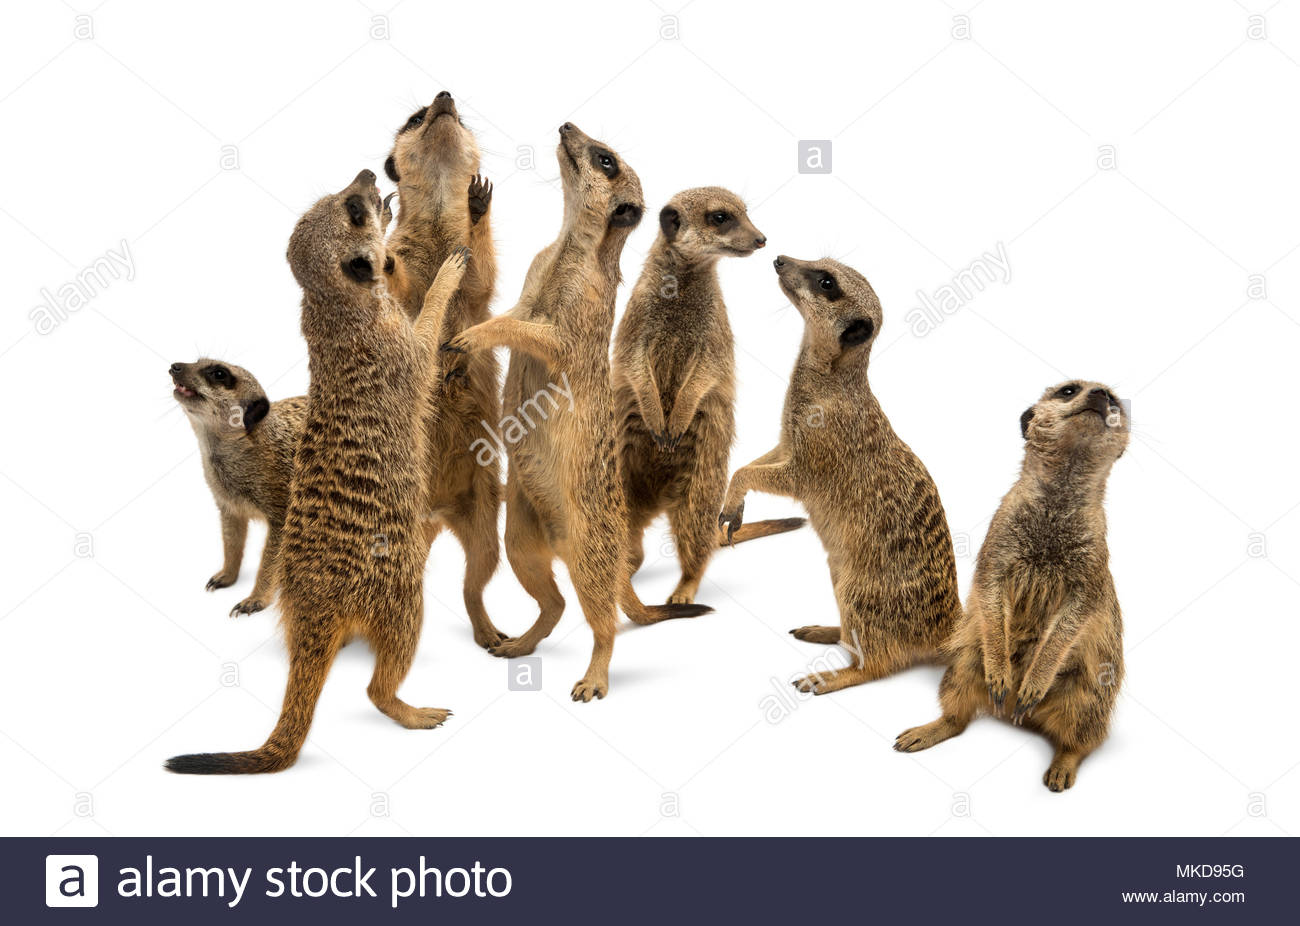 Meerkats mob, (Suricata suricatta), isolated on white Mulhouse Zoological and Botanical Park, France - Stock Image